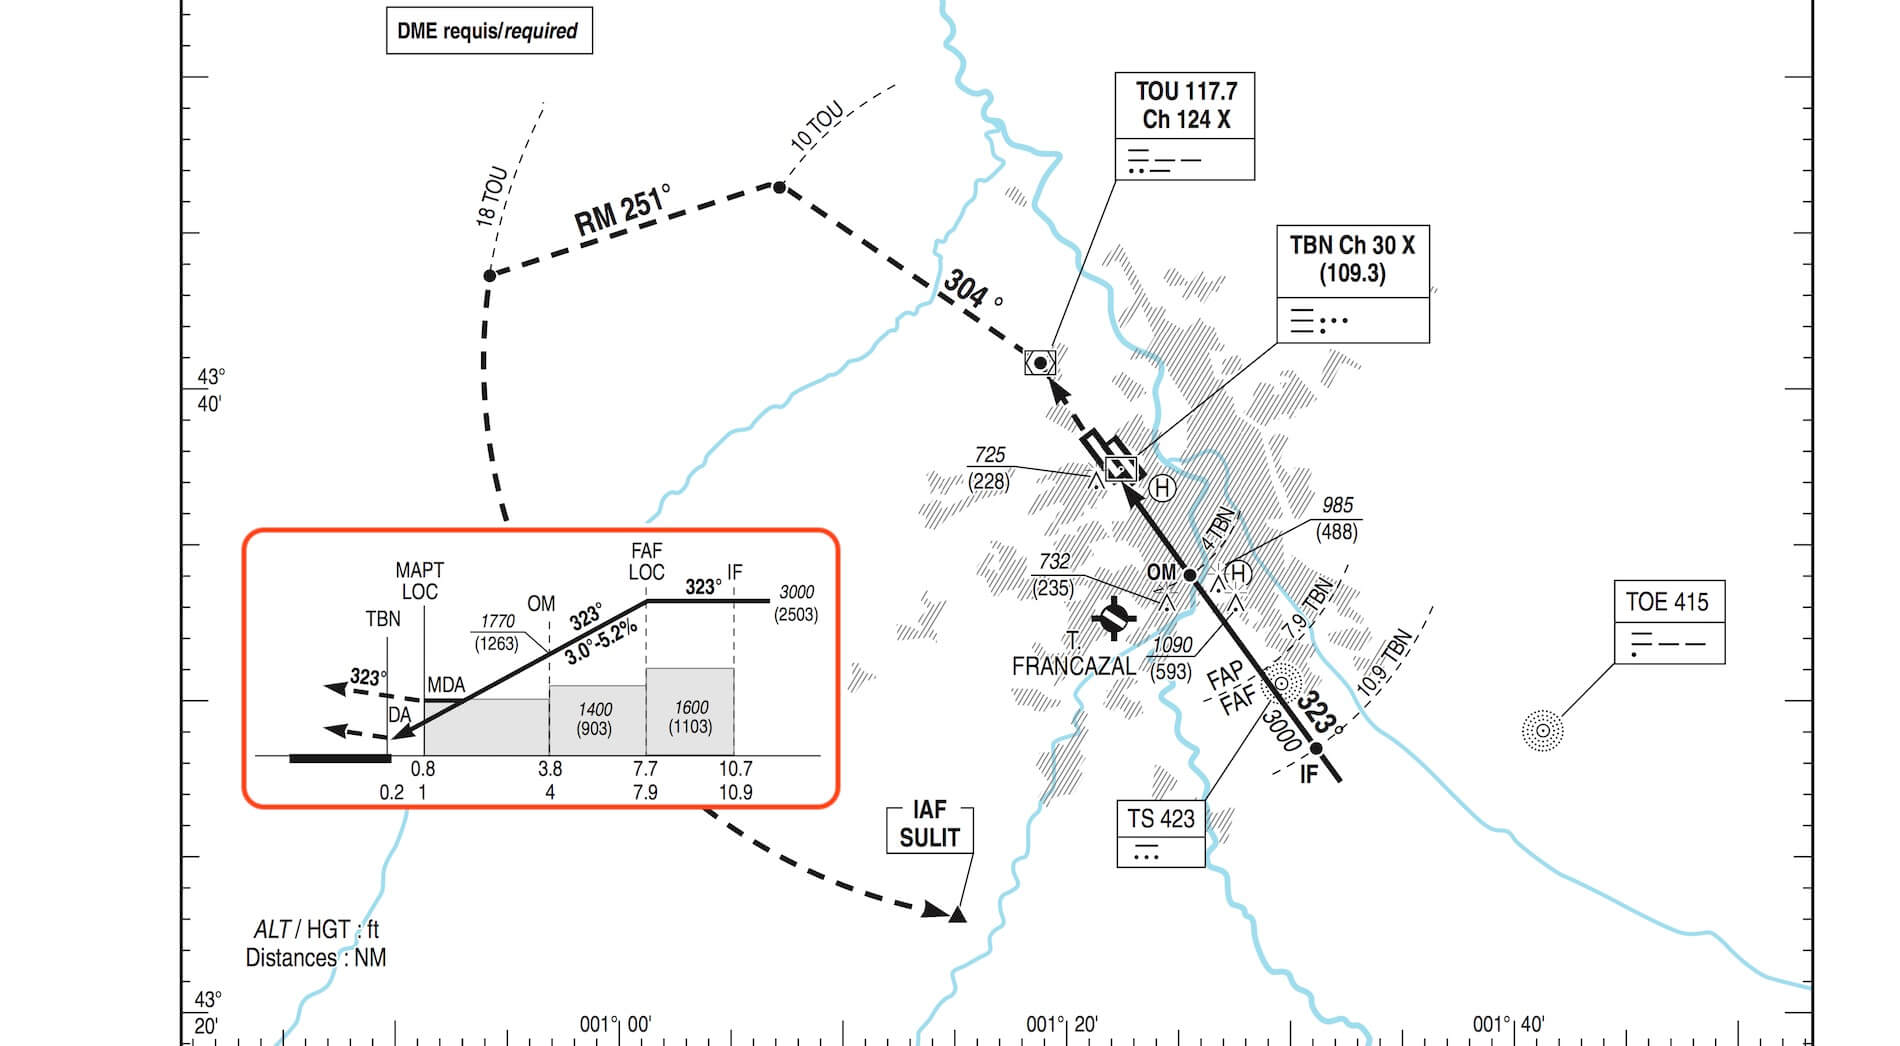 Review Toliss Airbus A319 X Plained The Source For All Your Logic Gate Diagram In Gorgeous Schematic Adding To This Mcdu Action I Removed From My Flight Plan While Still Above Pyrenees One Waypoint Just Practice But See How